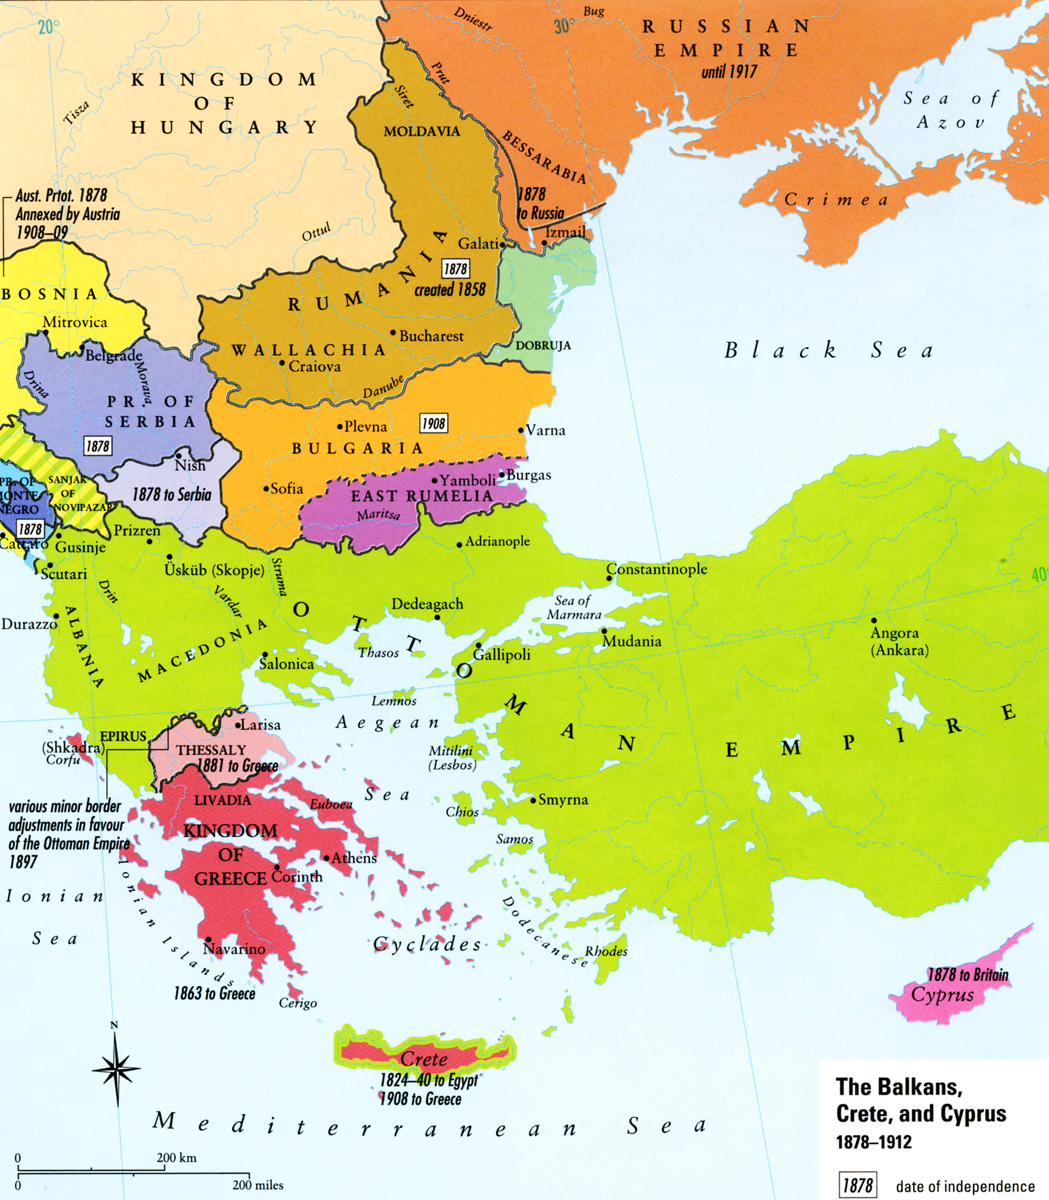 Ottoman Russian War Today In European History The Russians Capture Plevna 1877